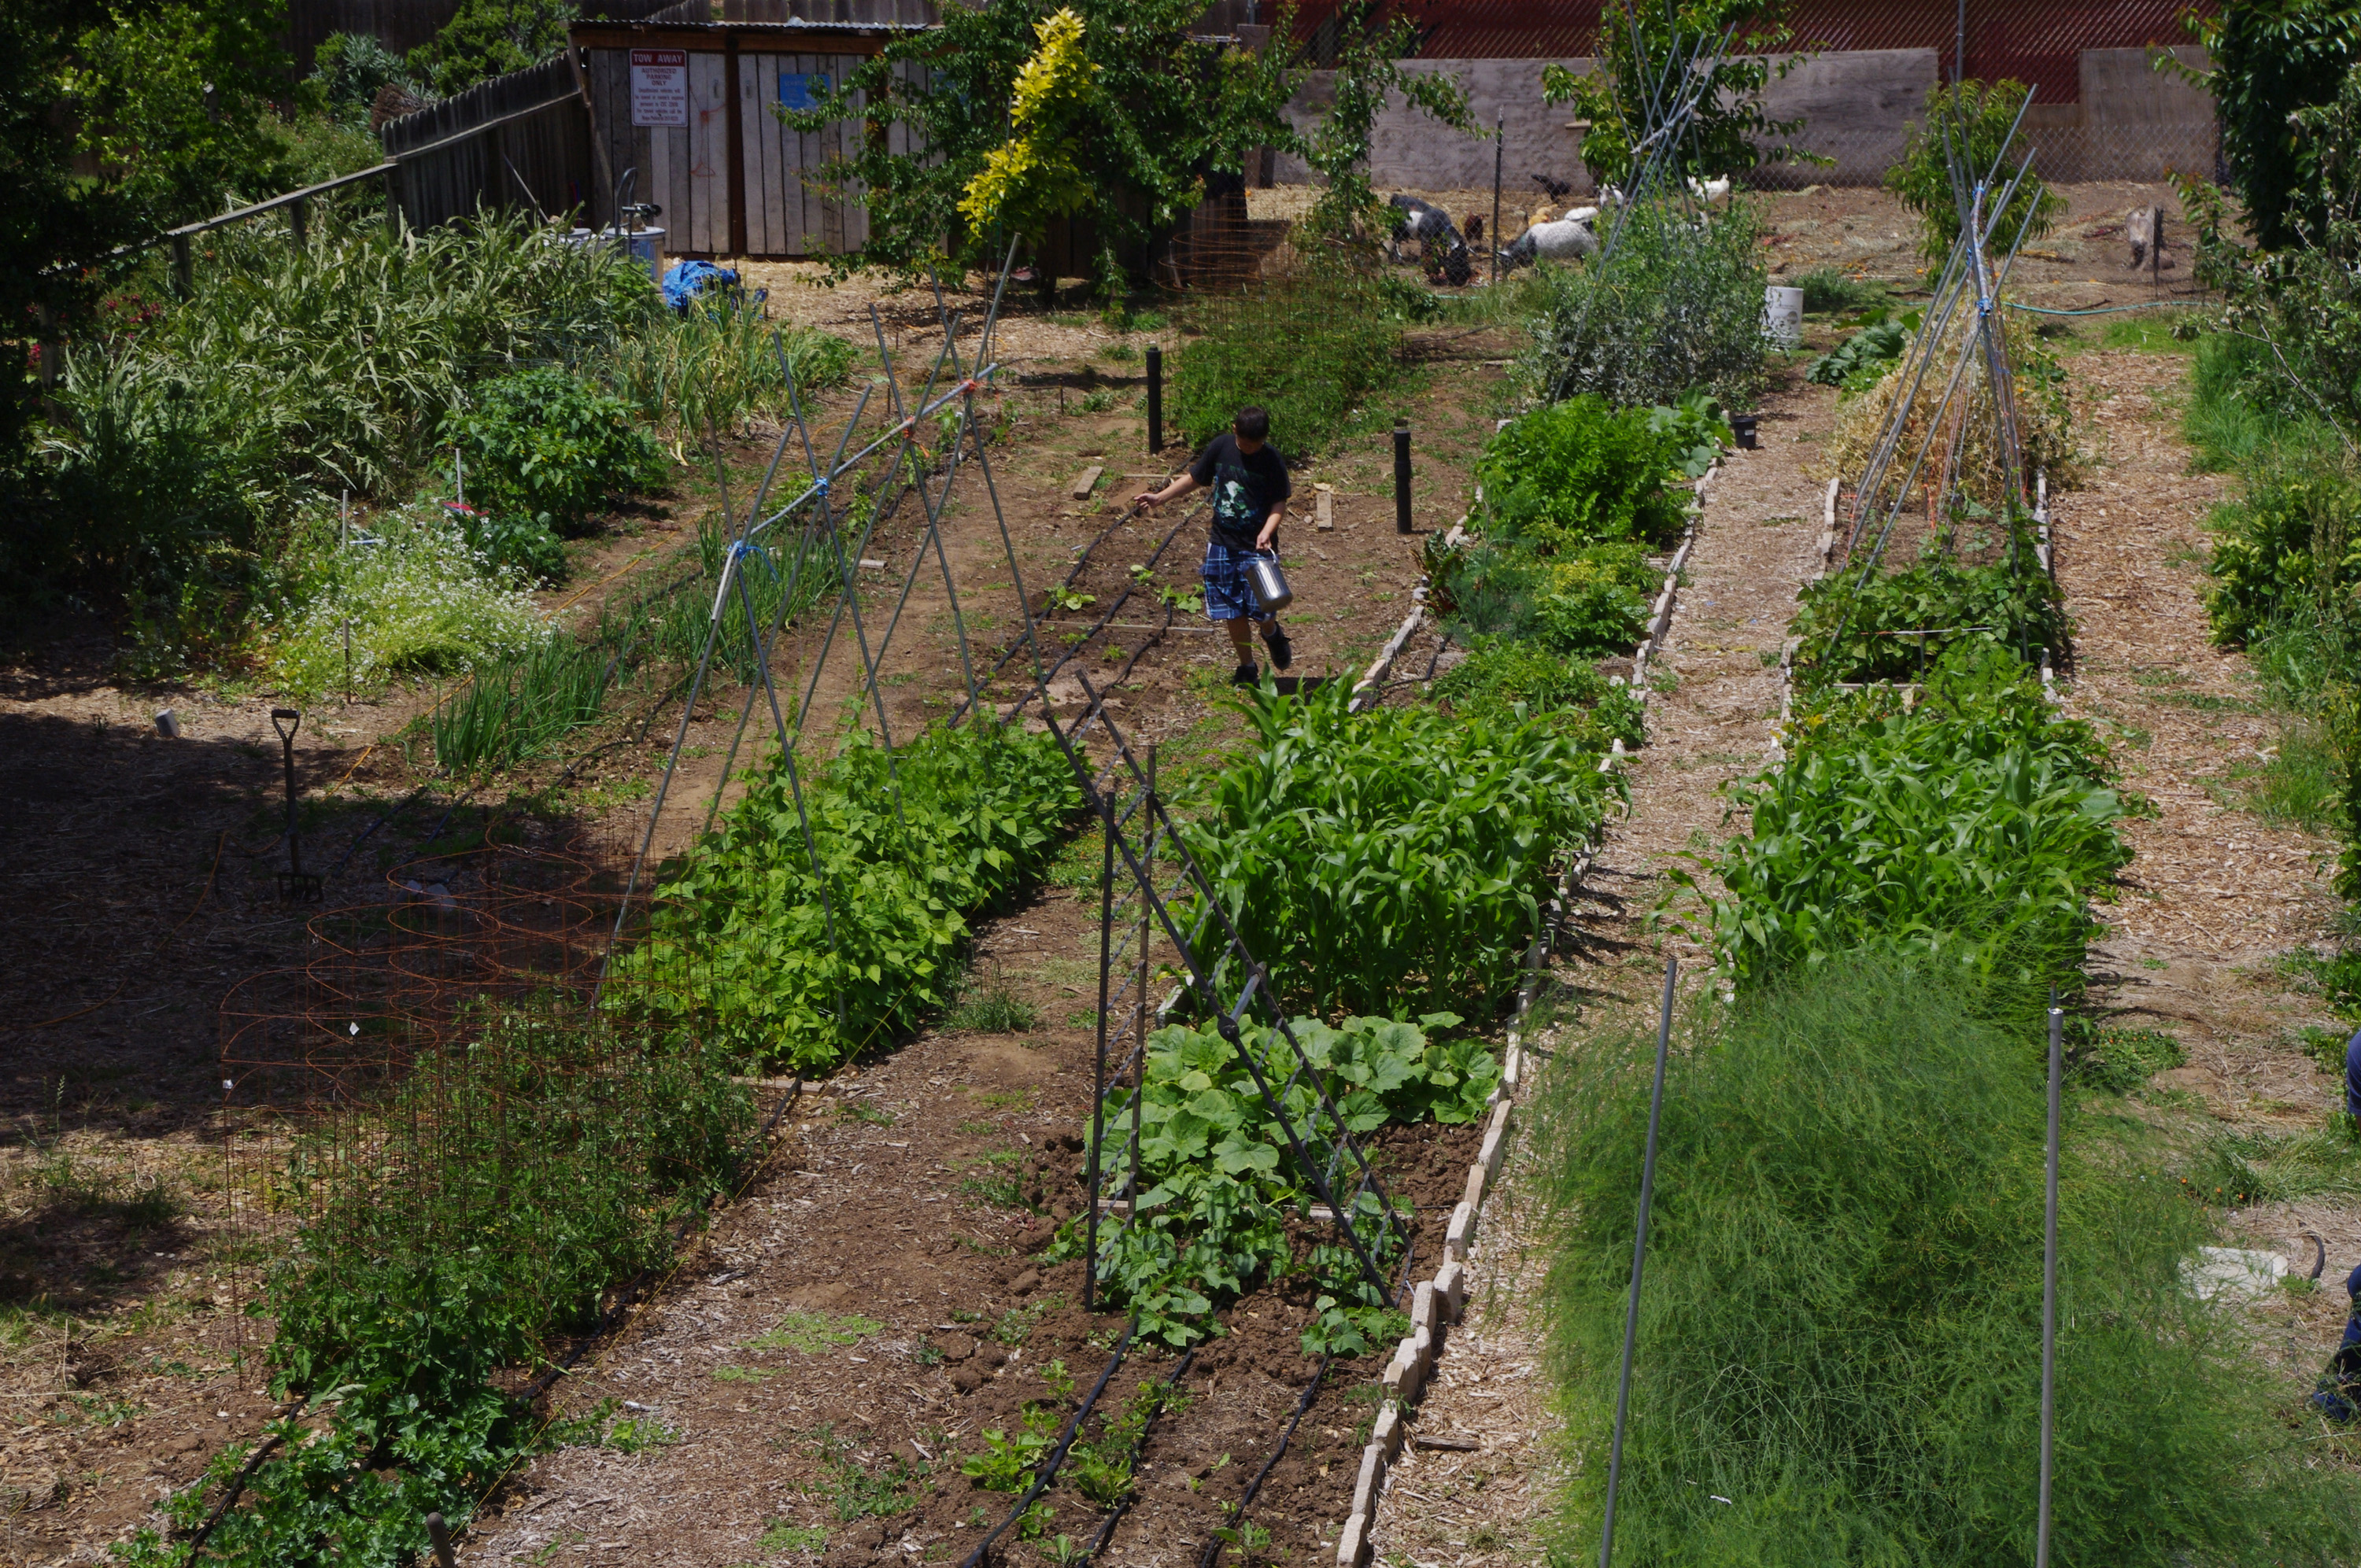 Vegetable garden rows - There Are Many Types Of Vegetable Gardens